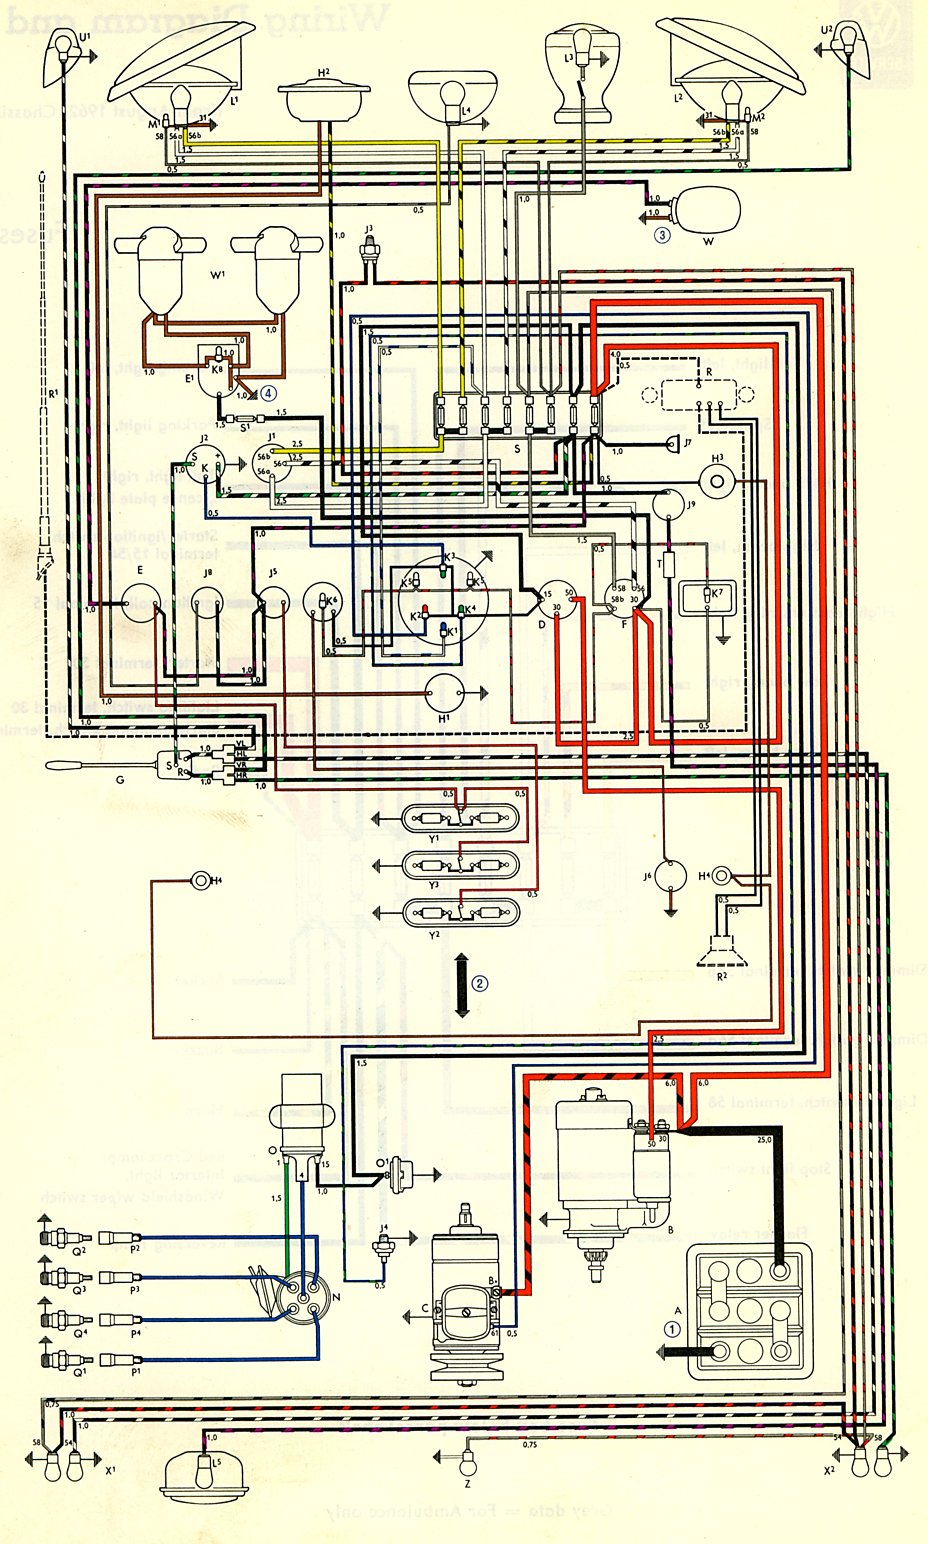 vw wiring diagrams 1963 private sharing about wiring diagram u2022 rh caraccessoriesandsoftware co uk